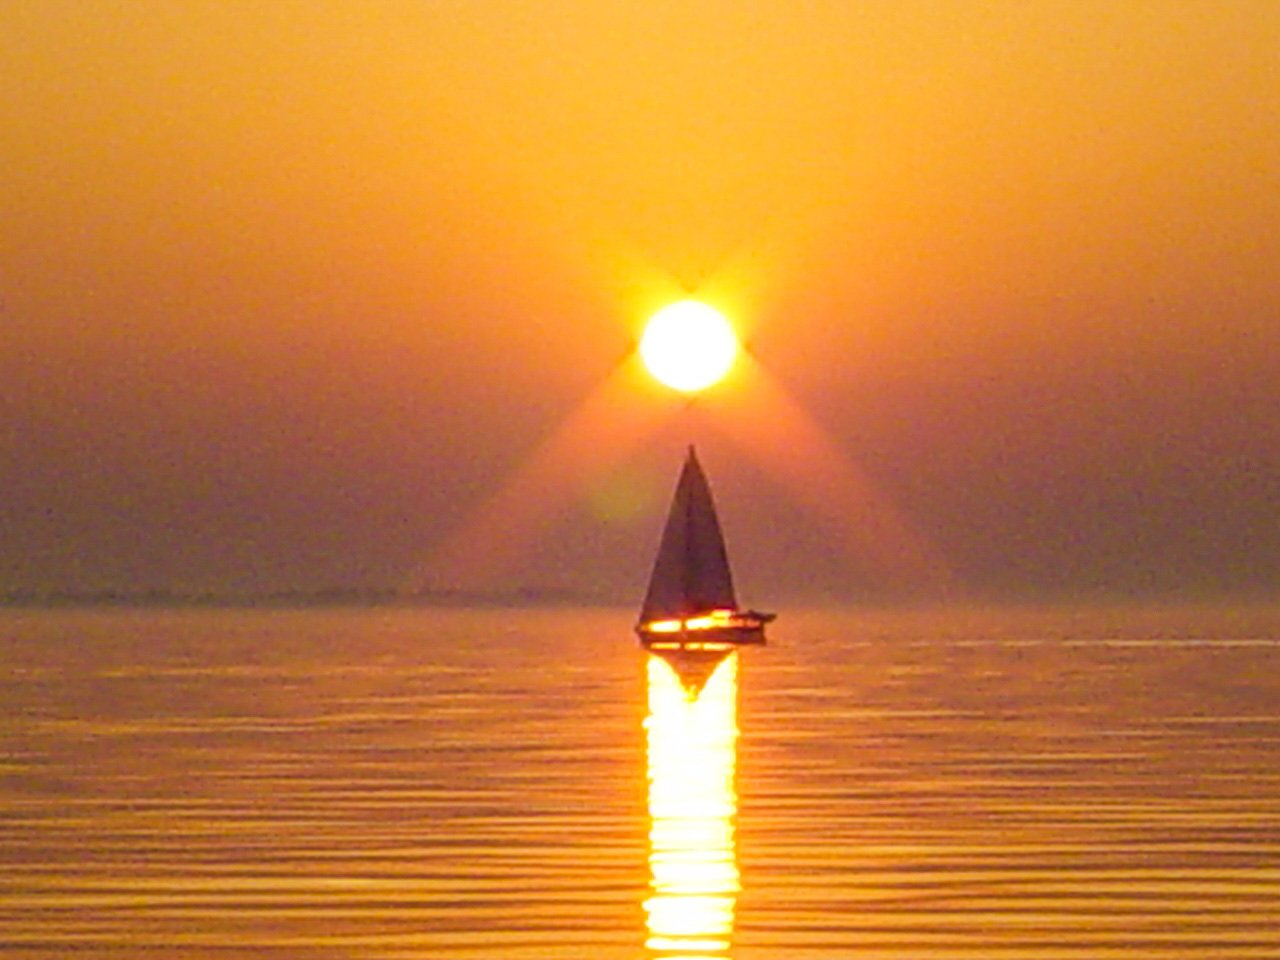 SAILING OFF INTO THE SUNSET, THE DREAM UNFOLDS!